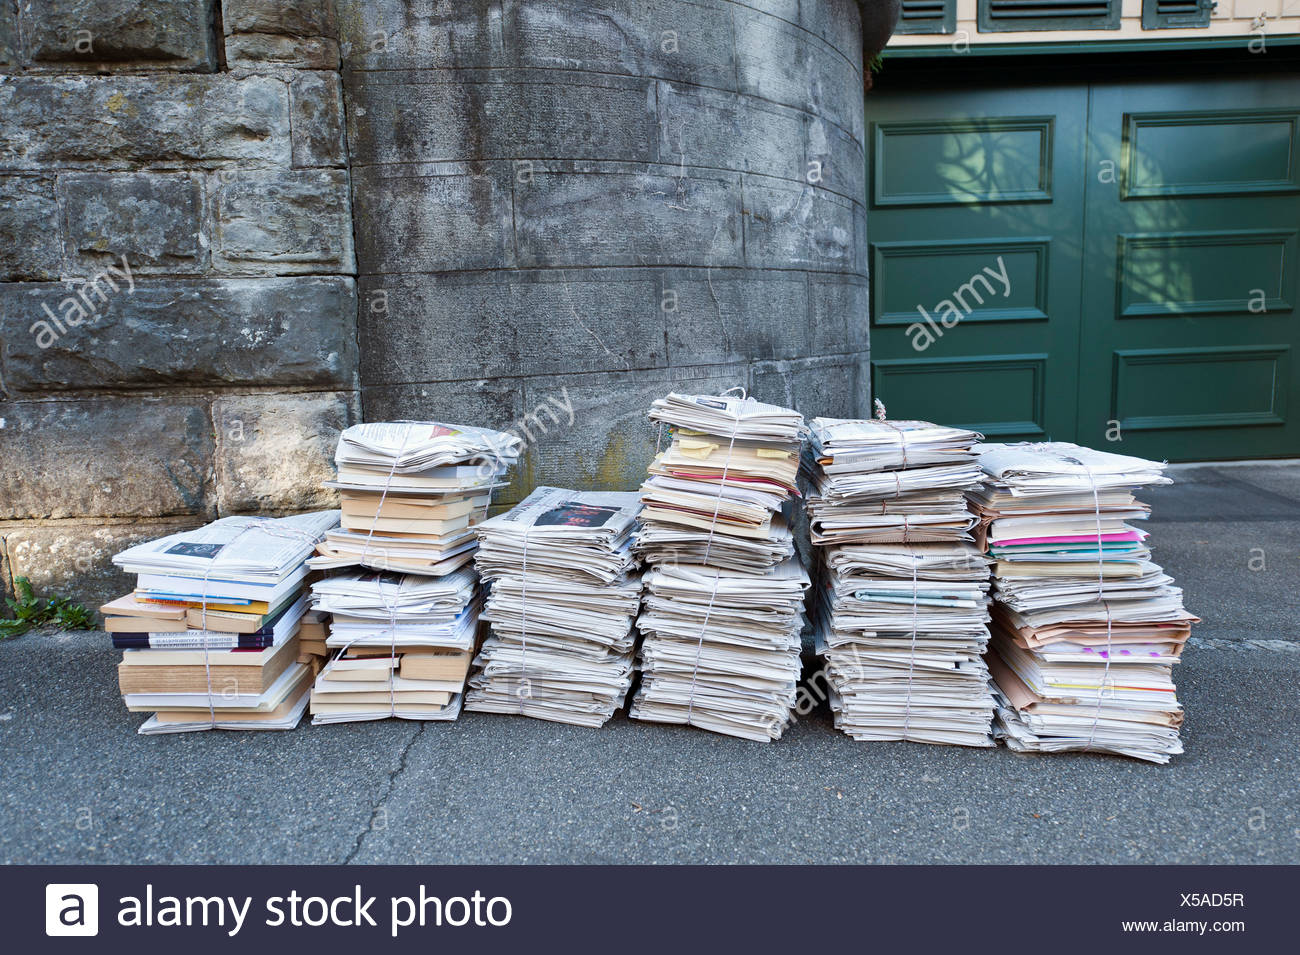 Bundled paper for recycling, Zurich, Switzerland, Europe - Stock Image